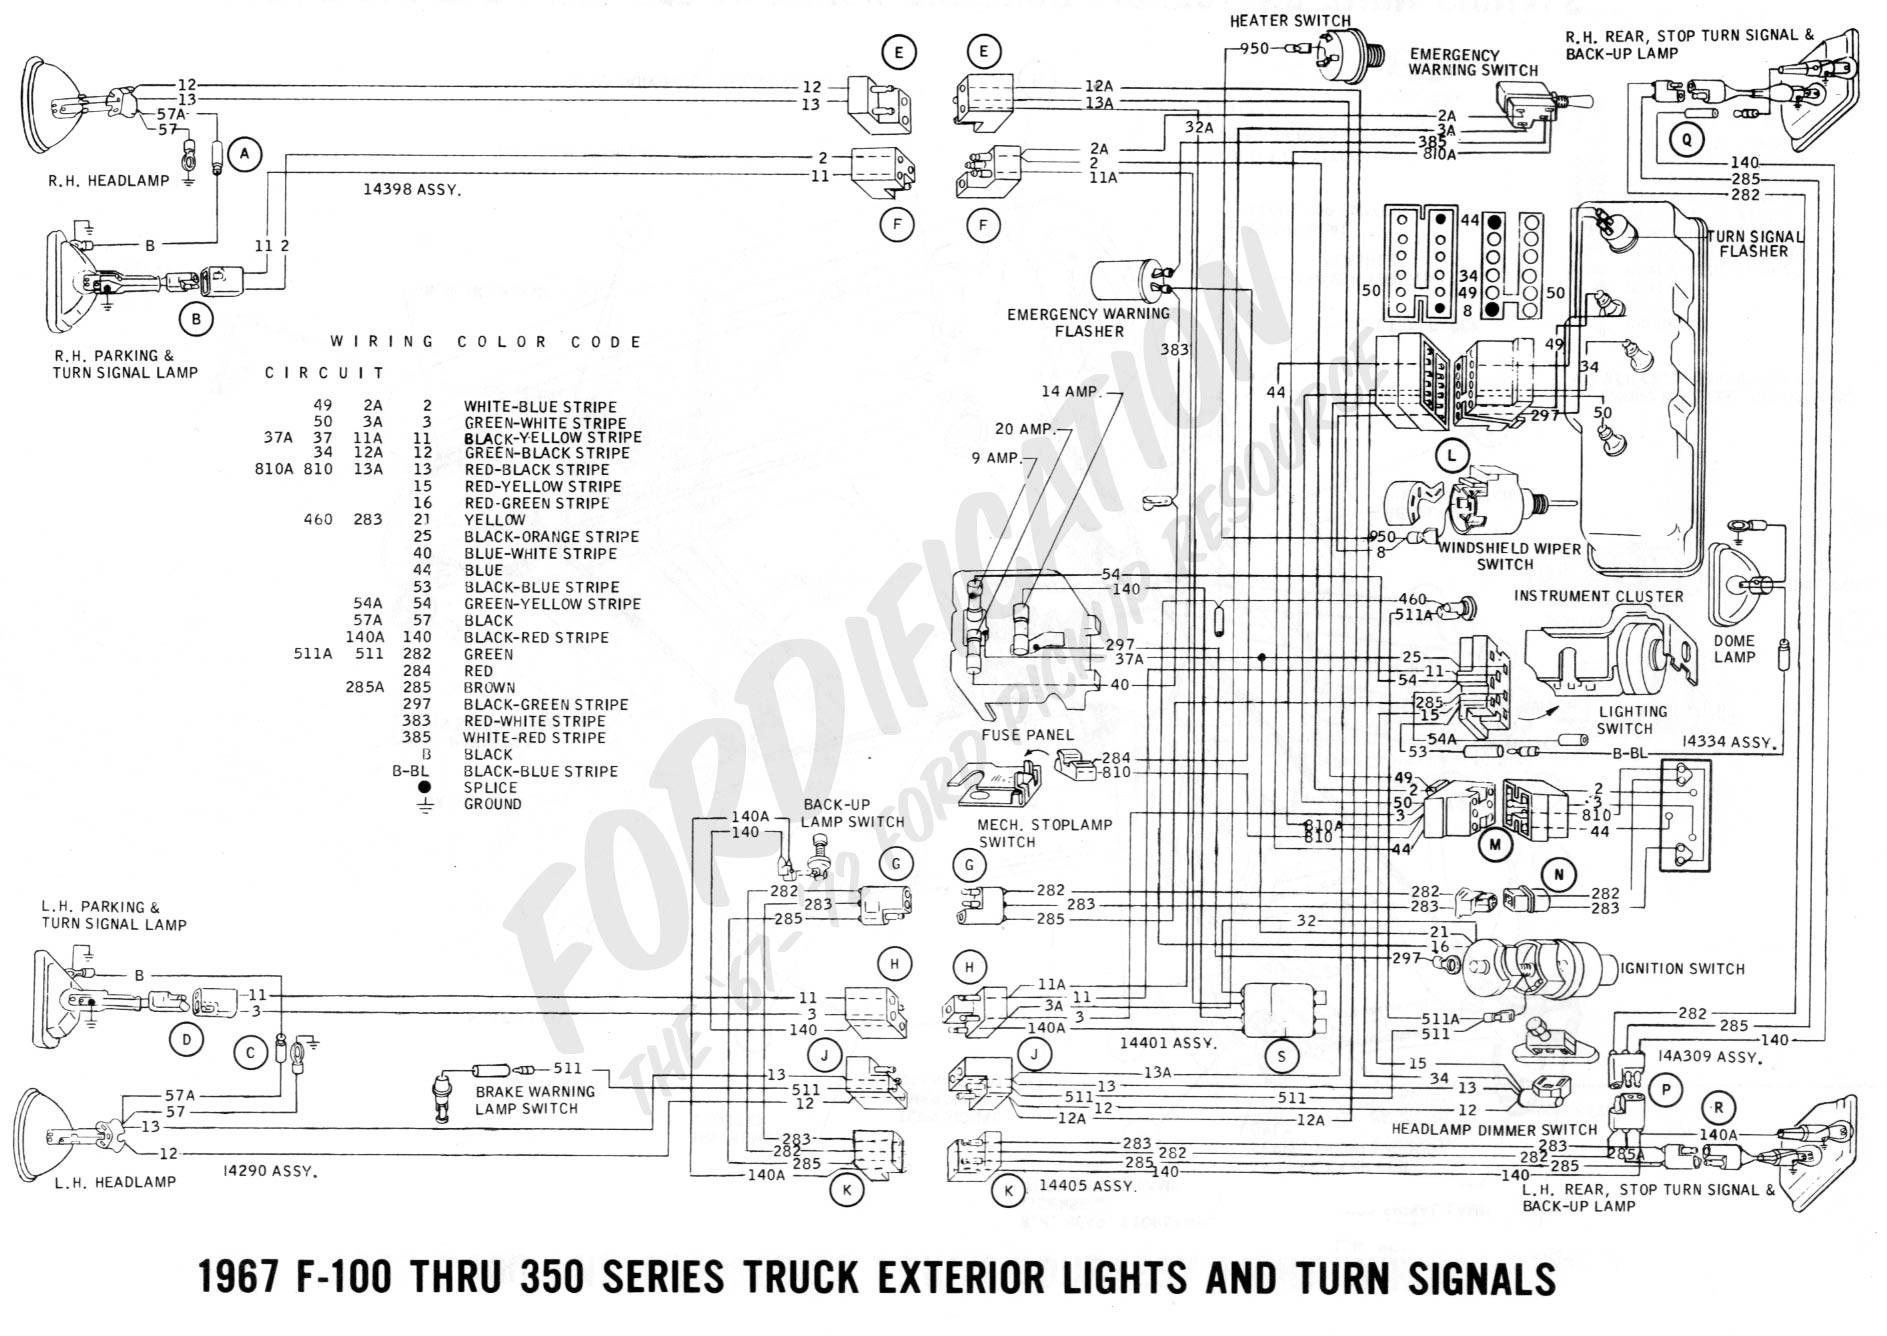 1954 ford steering column wiring diagrams introduction to 1975 ford truck wiring diagrams 1997 ford steering column wiring diagram electrical drawing wiring rh g news co 1975 ford steering